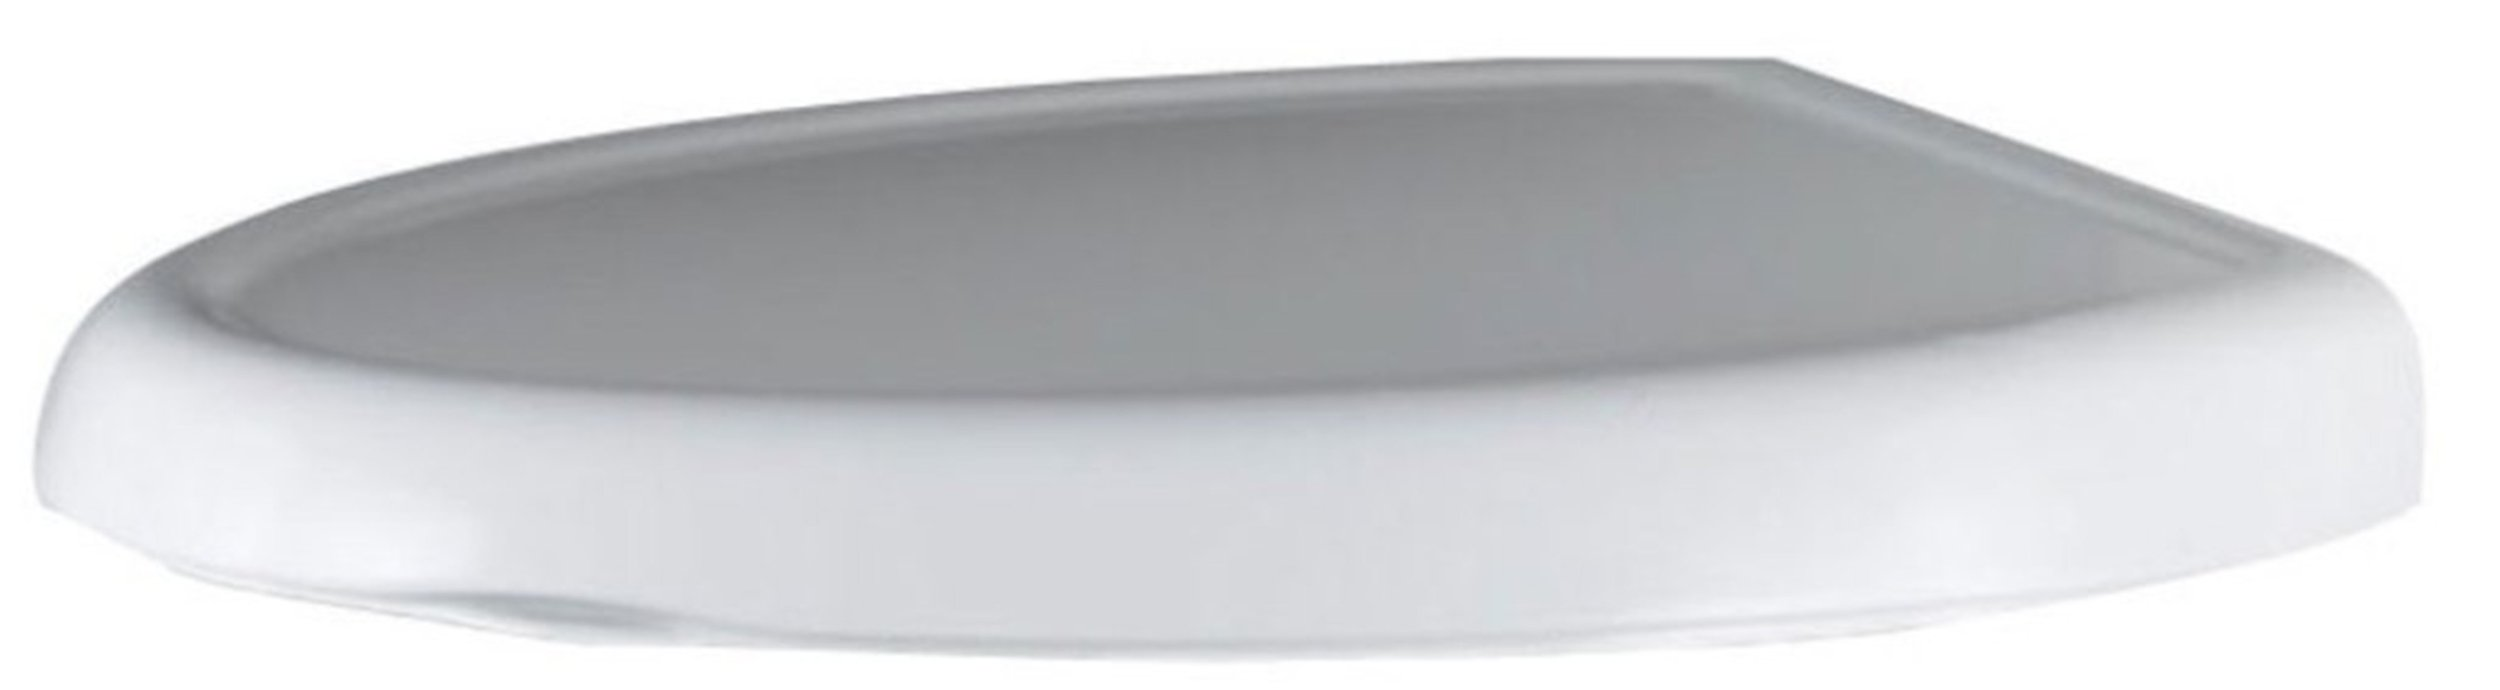 American Standard 5345.110.020 Cadet-3 Round Front Slow Close Toilet Seat with EverClean Surface, White